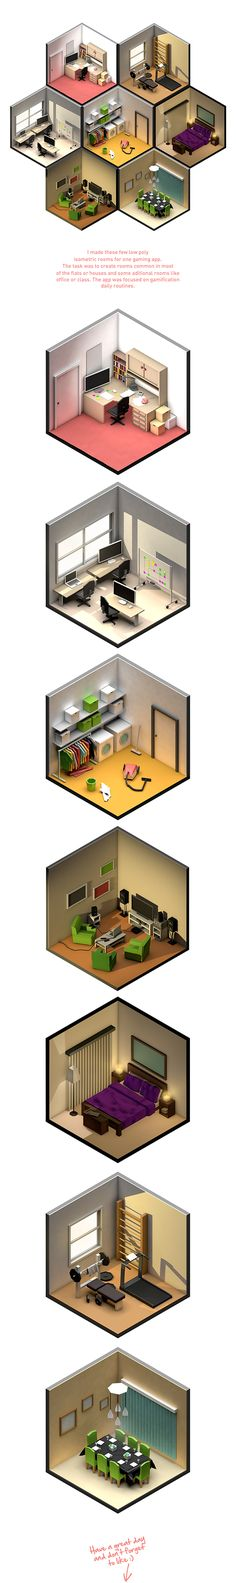 Really a sucker for isometric stuff. Low Poly rooms by Petr Kollarcik, via Behance Isometric Art, Isometric Design, Isometric Shapes, Bg Design, Game Design, Low Poly, 3d Modellierung, Concept Art Landscape, Modelos 3d